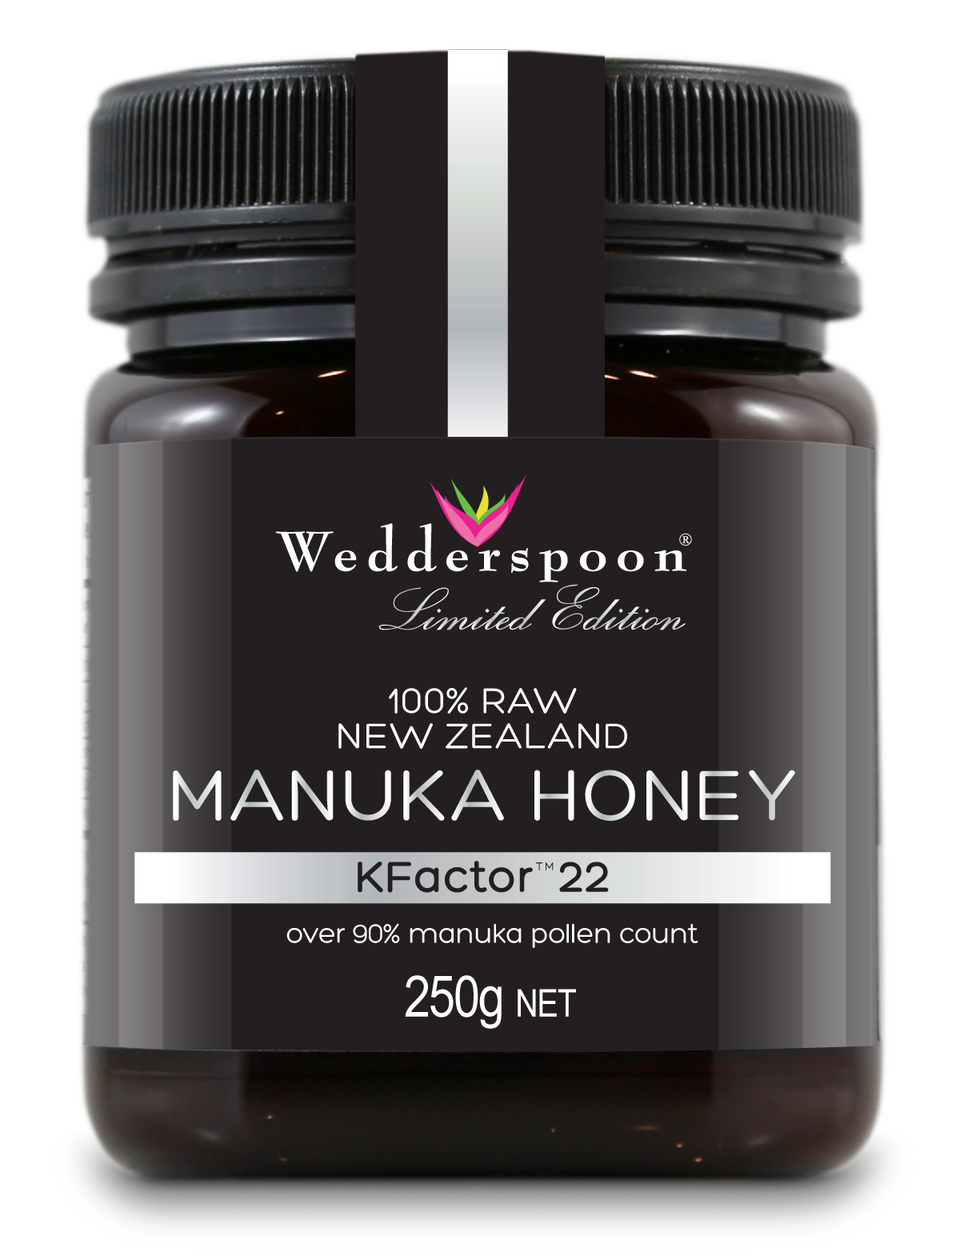 100% Raw Manuka Kfactor 22 Honey